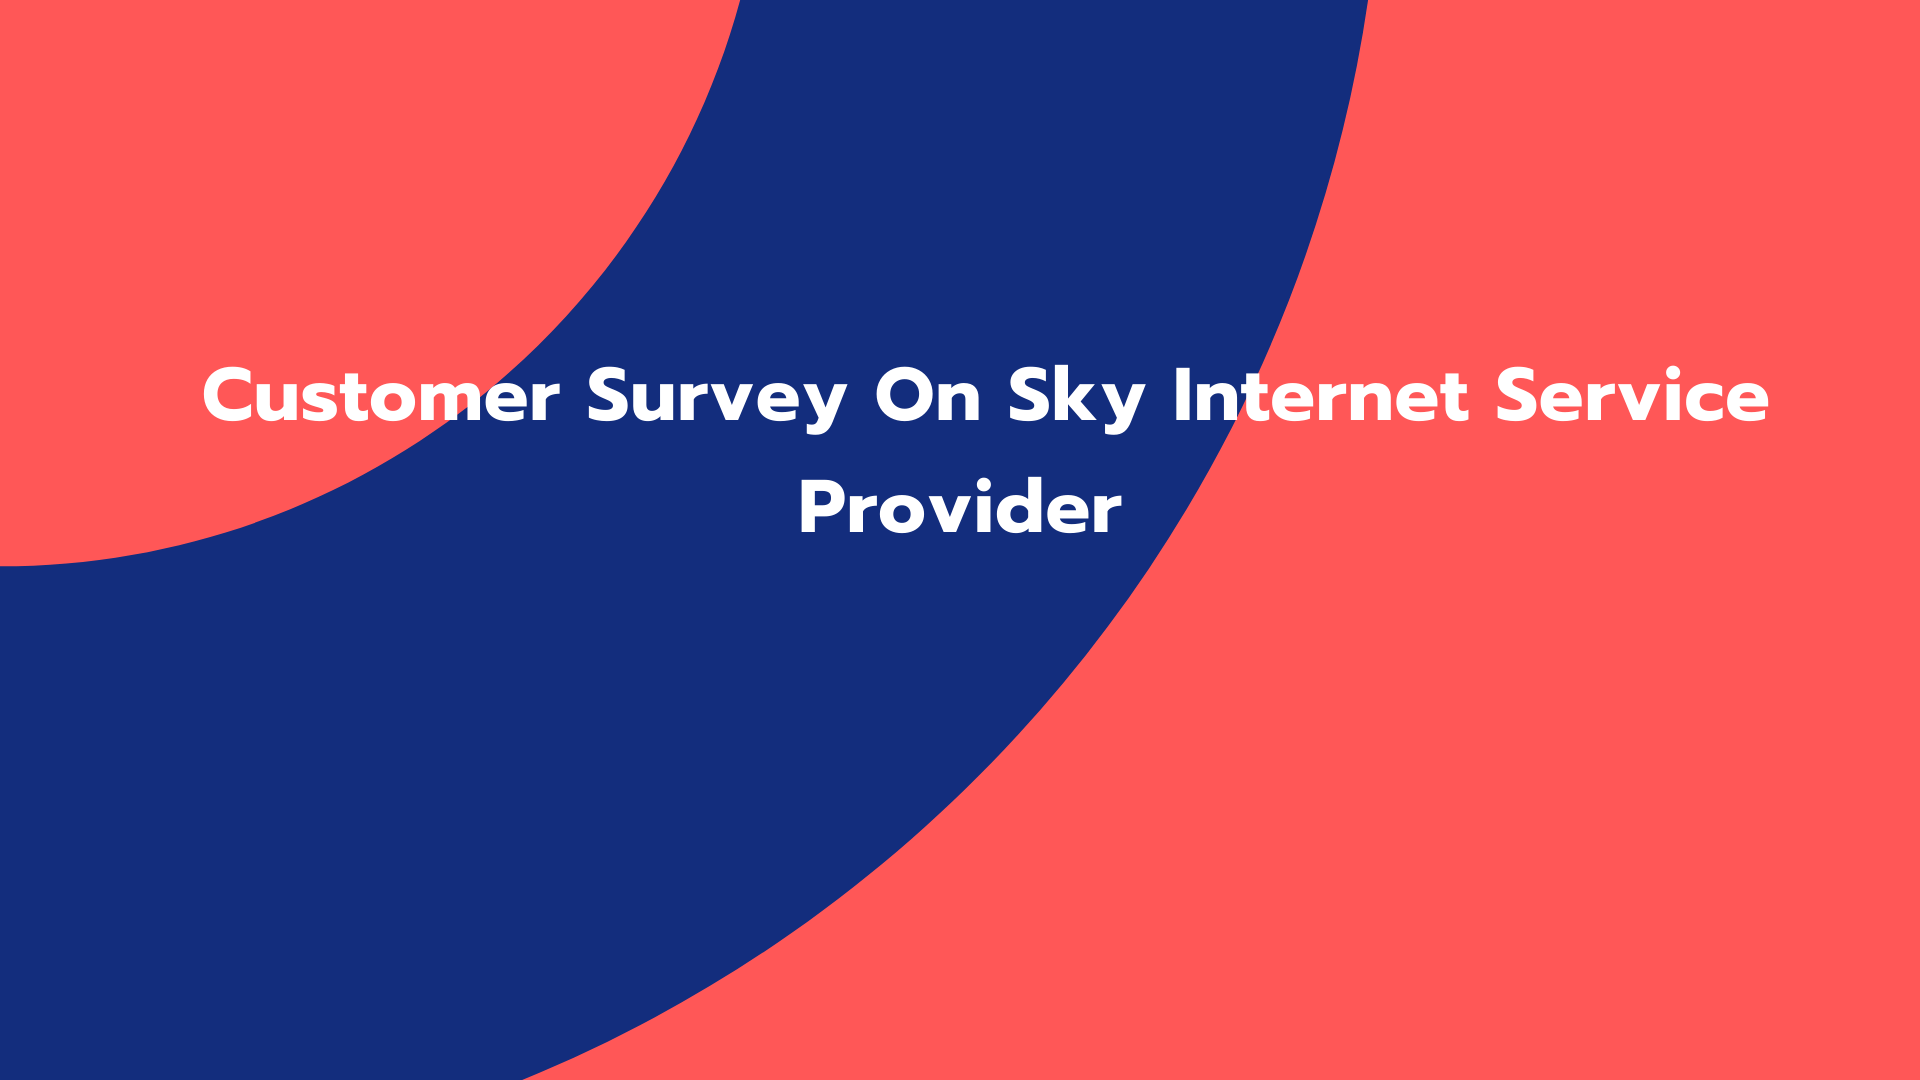 Customer Survey On Sky Internet Service Provider